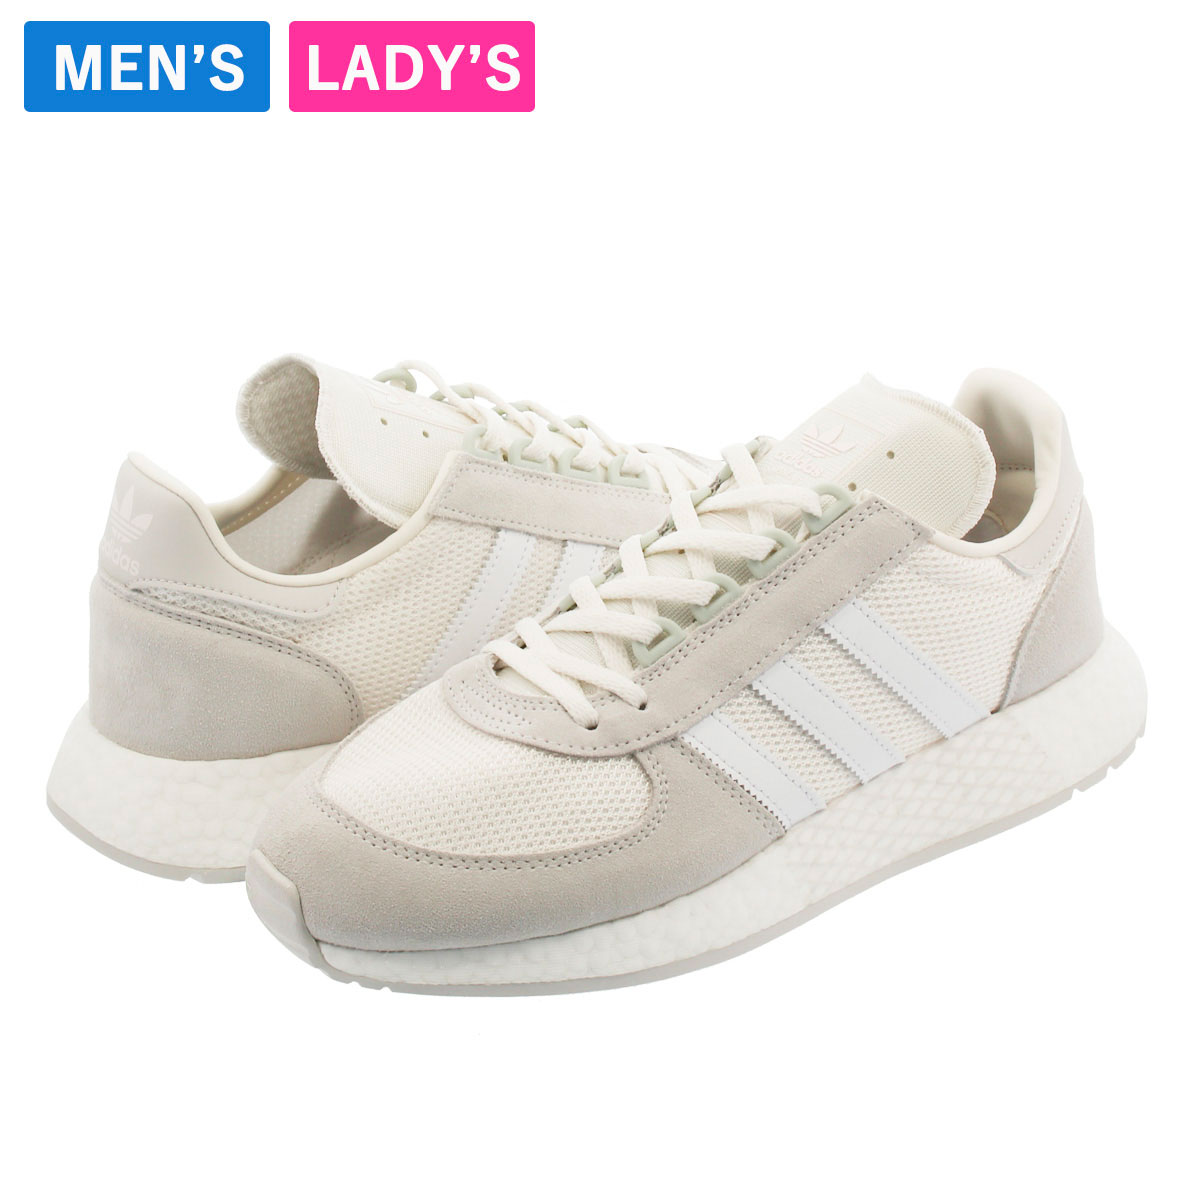 メンズ靴, スニーカー  adidas MARATHON x 5923 Never Made x 5923 CLOUD WHITERUNNING WHITEGREY ONE g27860